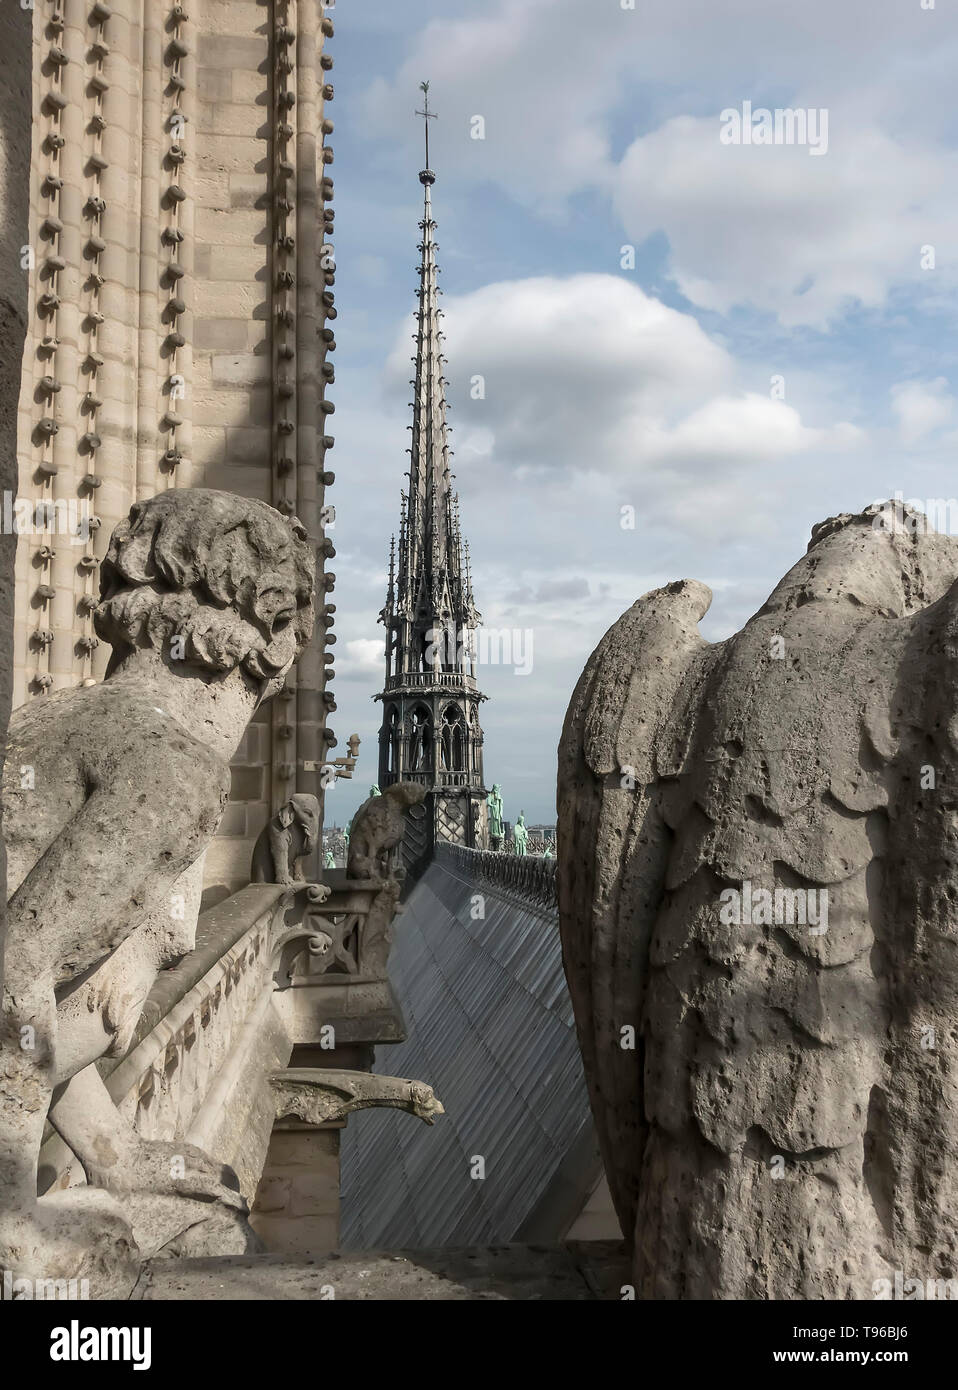 PHOTO: Spire and gargoyles on Notre Dame cathedral, Paris, France - Stock Image